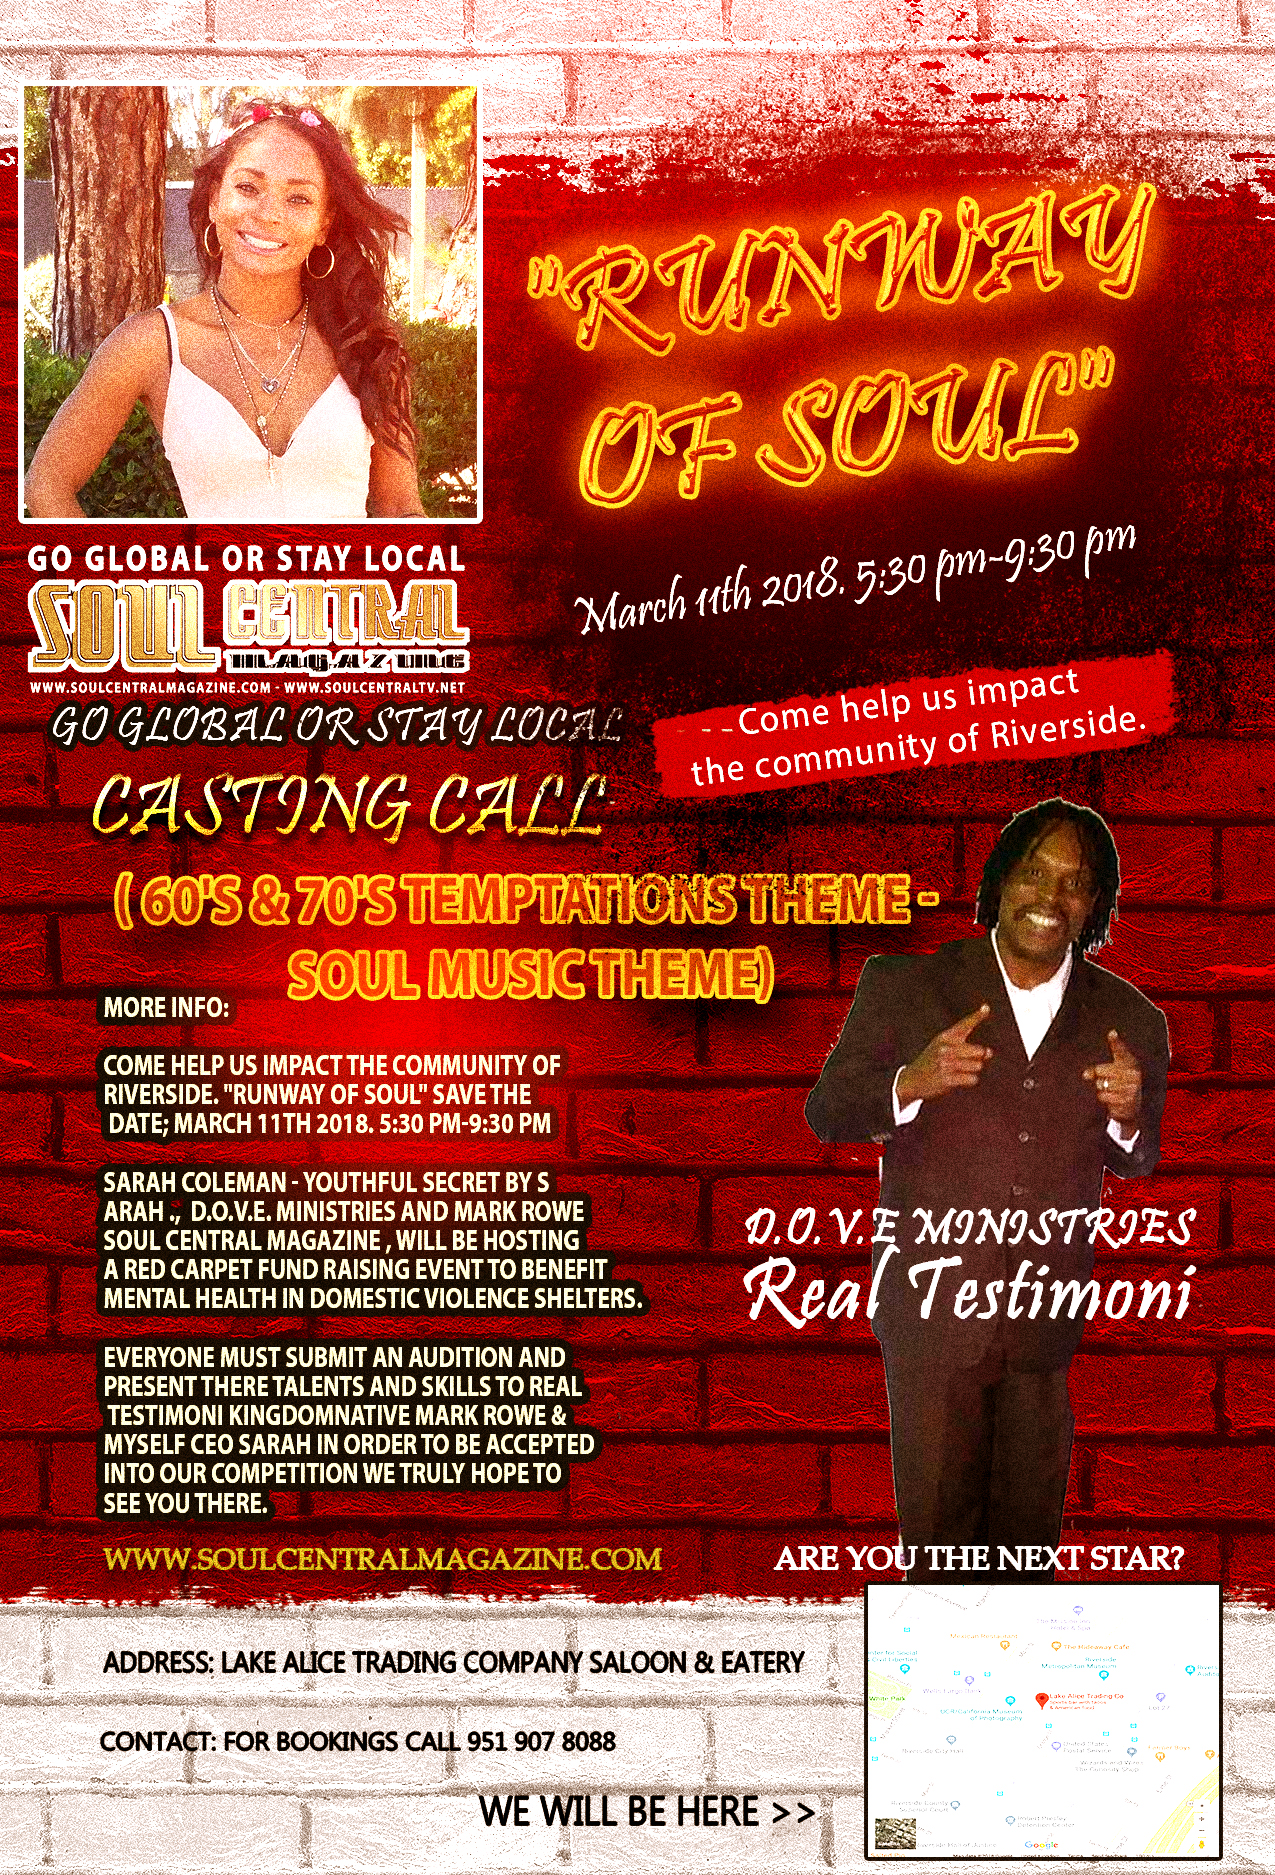 RUNWAY OF SOUL - Casting Call - Riverside - California - 3-11-18 - Soul Central Magazine